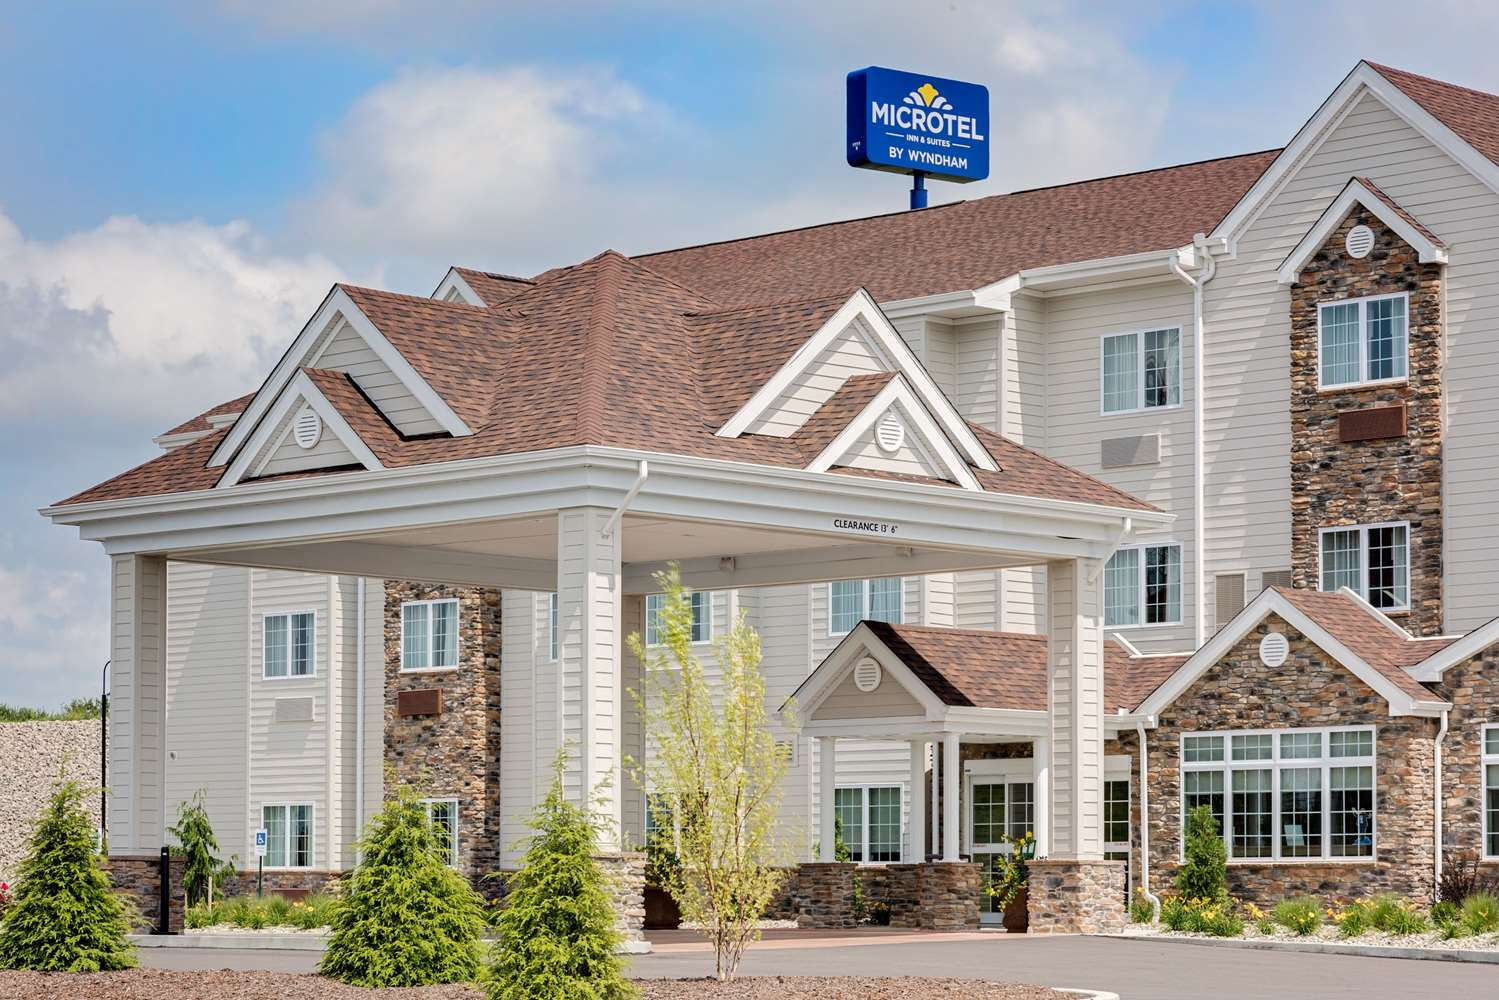 Exterior view - Microtel Inn & Suites by Wyndham Clarion